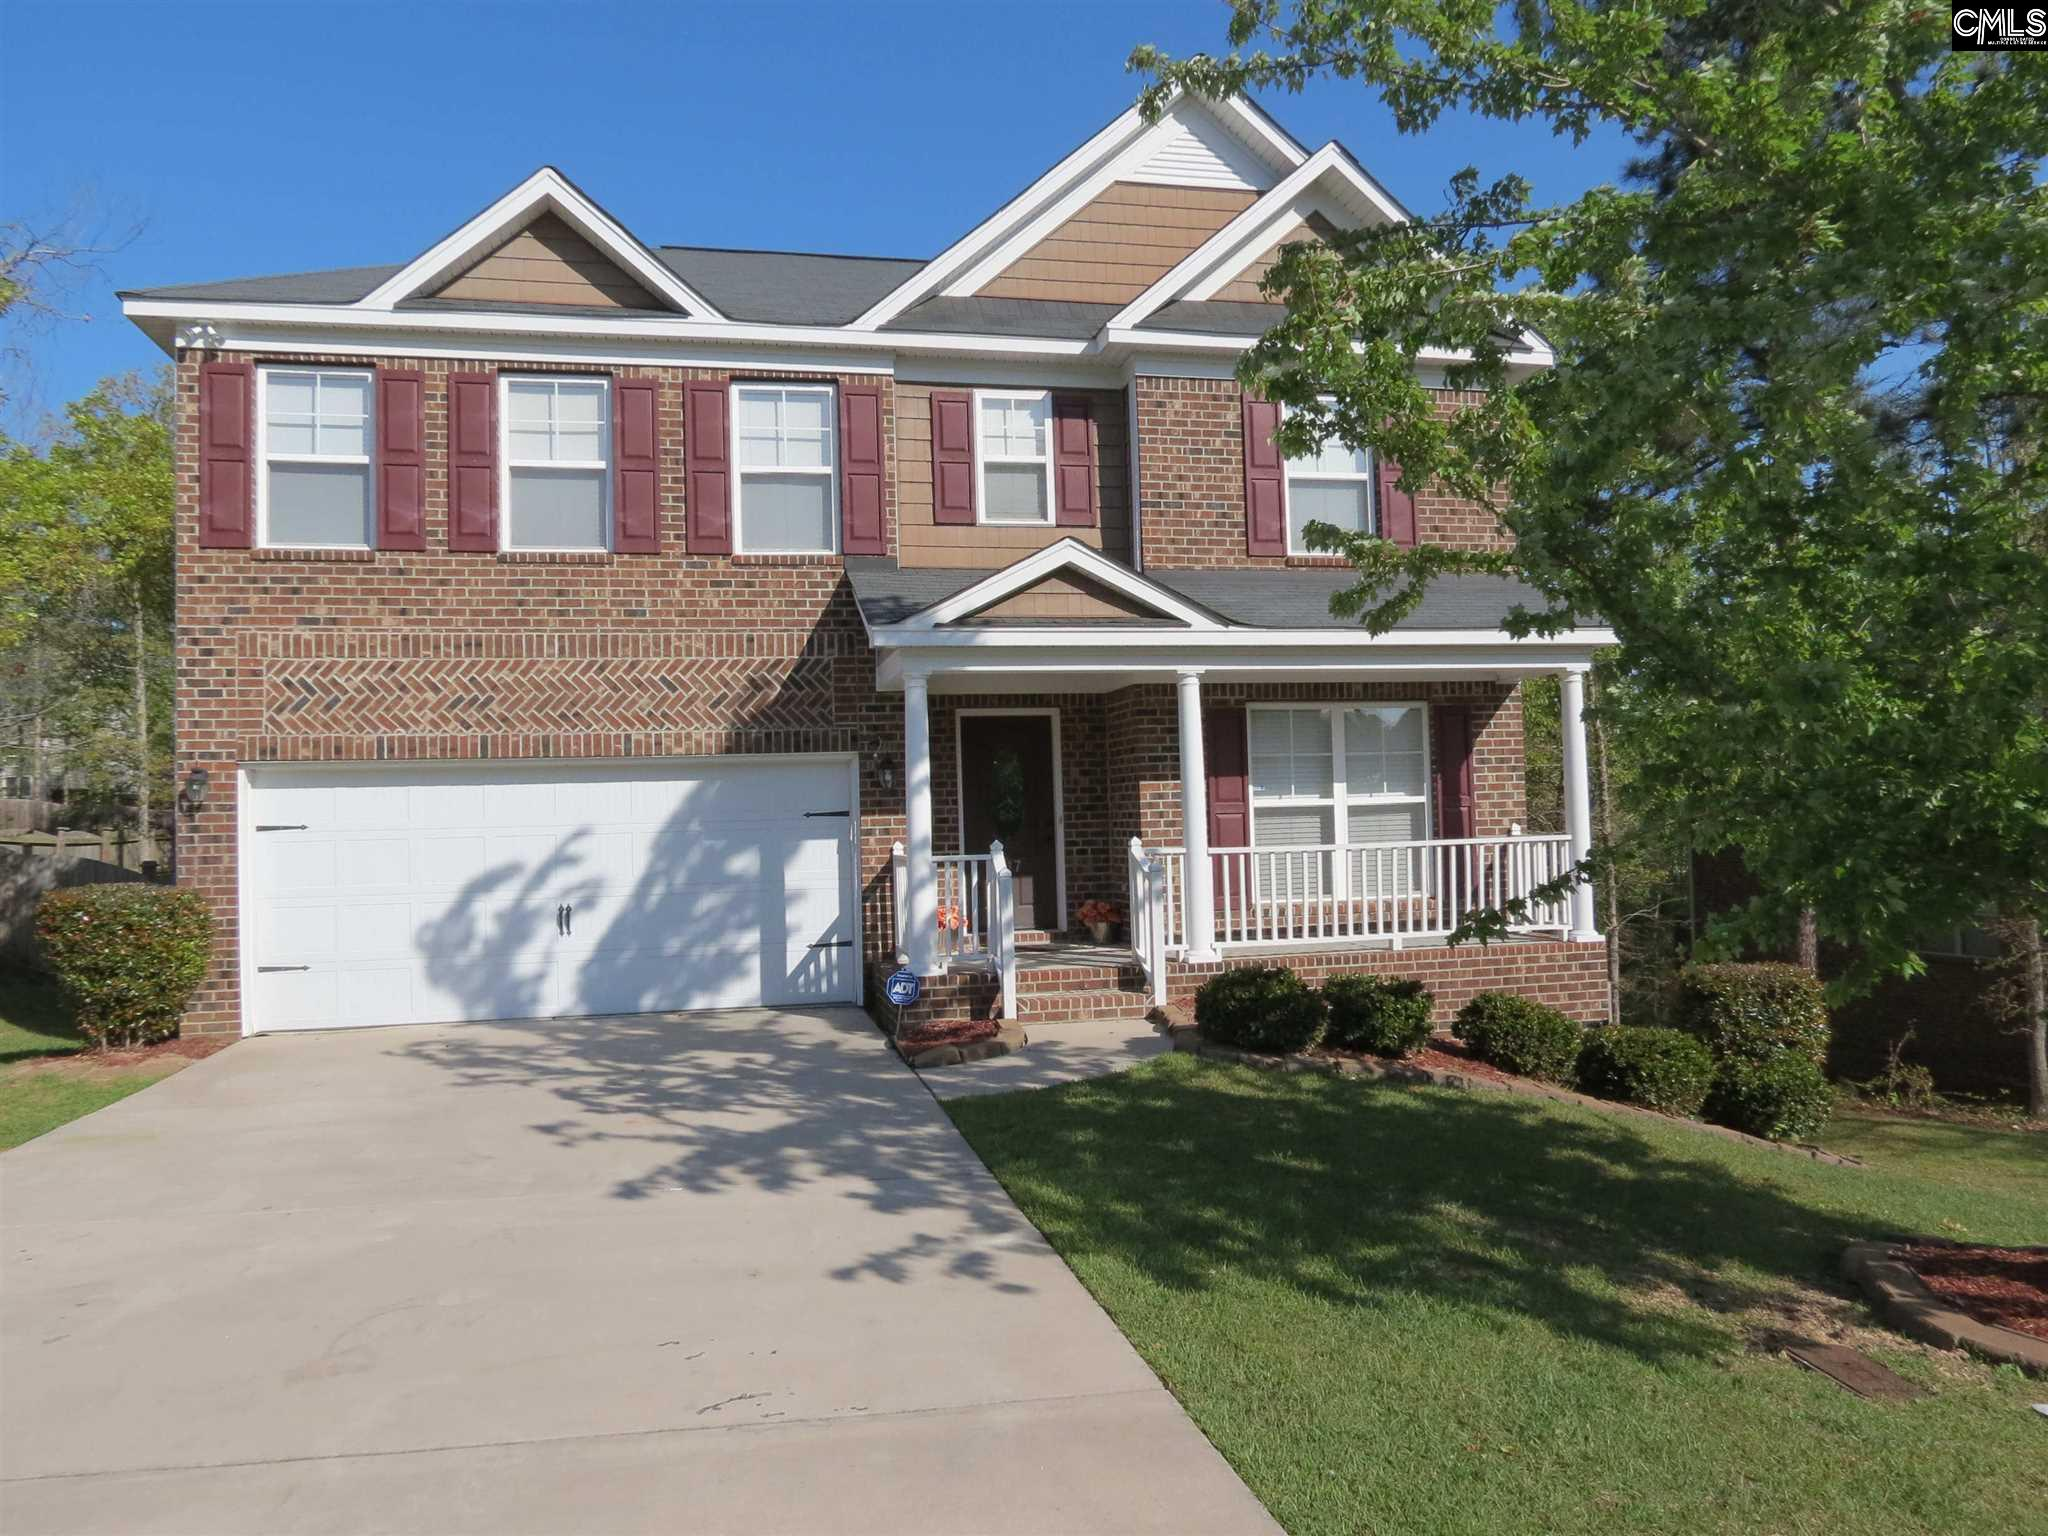 317 Red Tail Blythewood, SC 29016